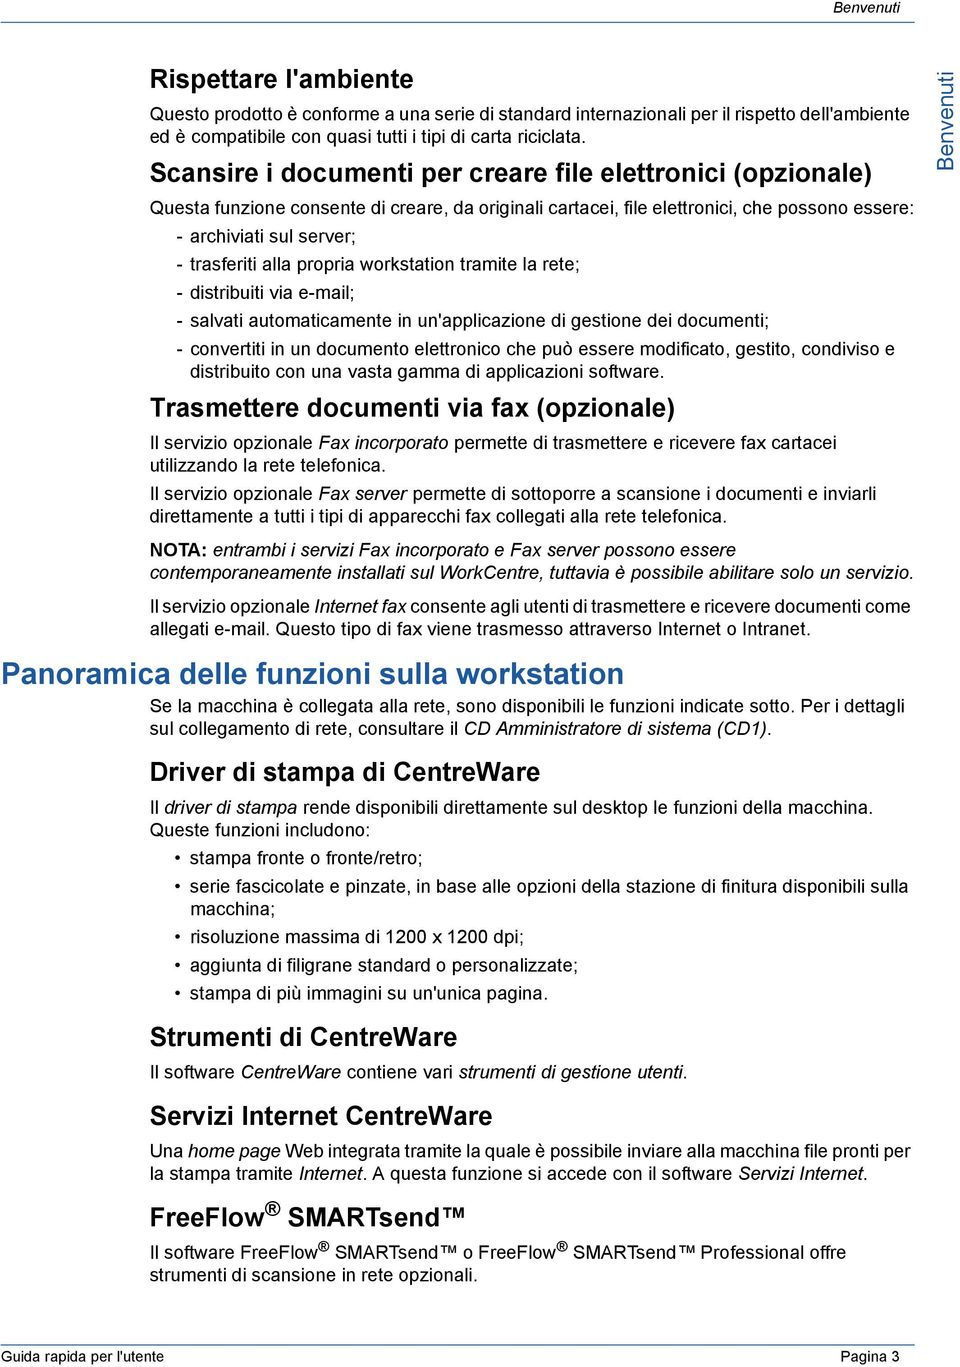 alla propria workstation tramite la rete; - distribuiti via e-mail; - salvati automaticamente in un'applicazione di gestione dei documenti; - convertiti in un documento elettronico che può essere